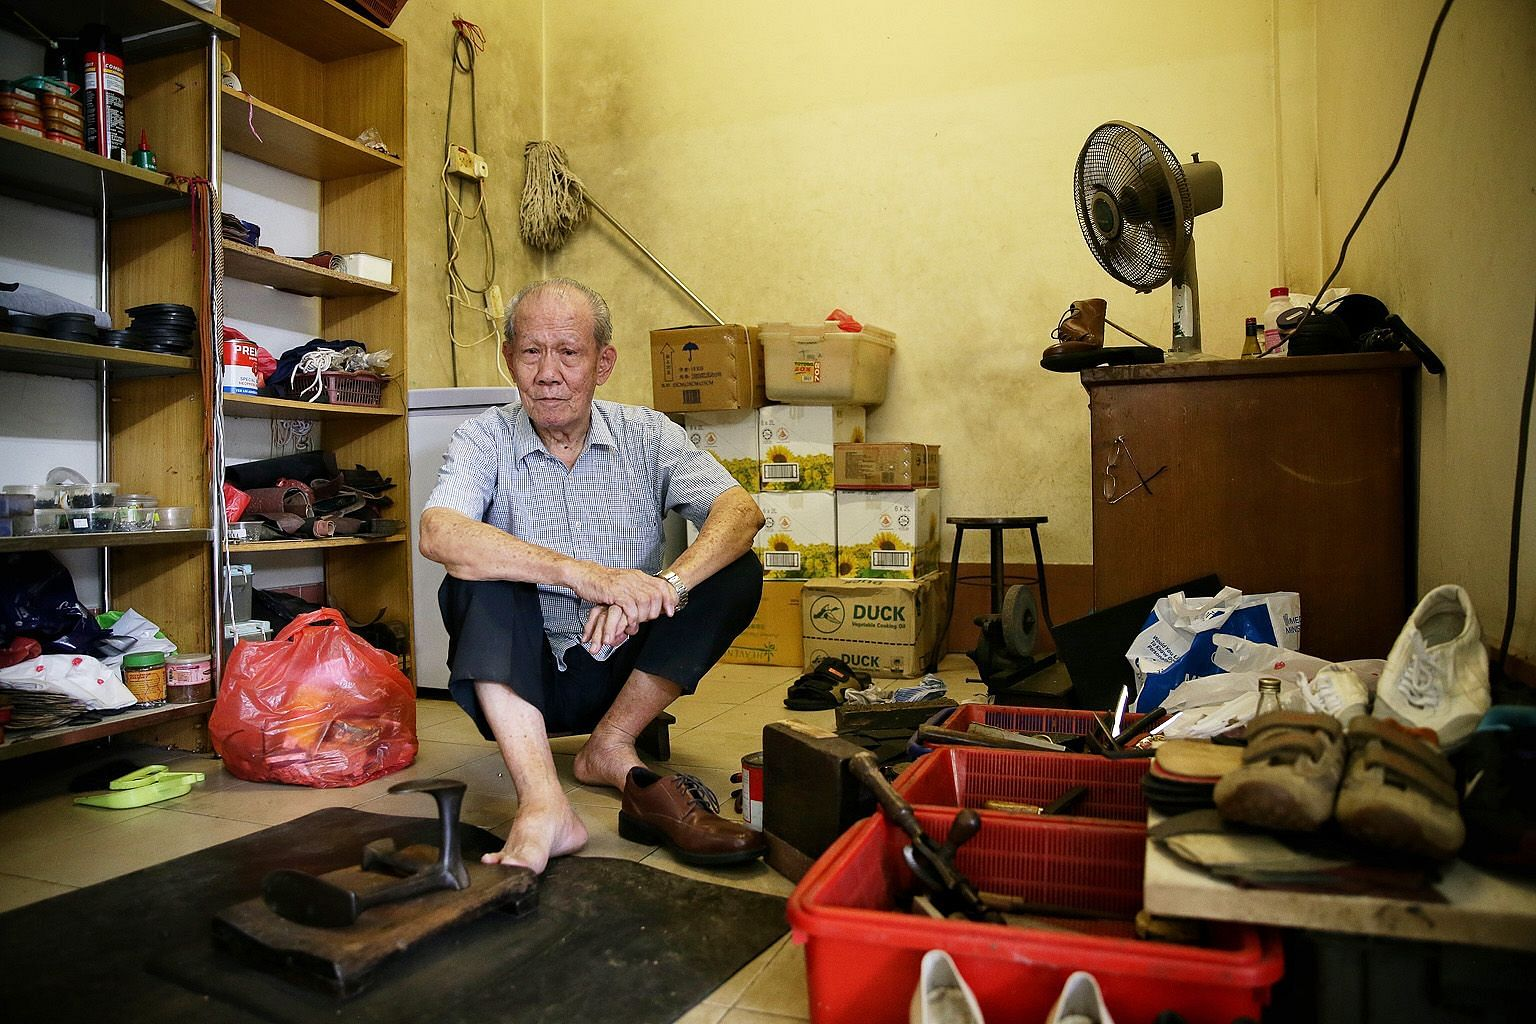 """Mr Low Poh Lye at his shoe repair shop in Bukit Timah Market and Food Centre. The octogenarian still works each morning """"to pass the time, have some fun"""", even though he does not need the income."""